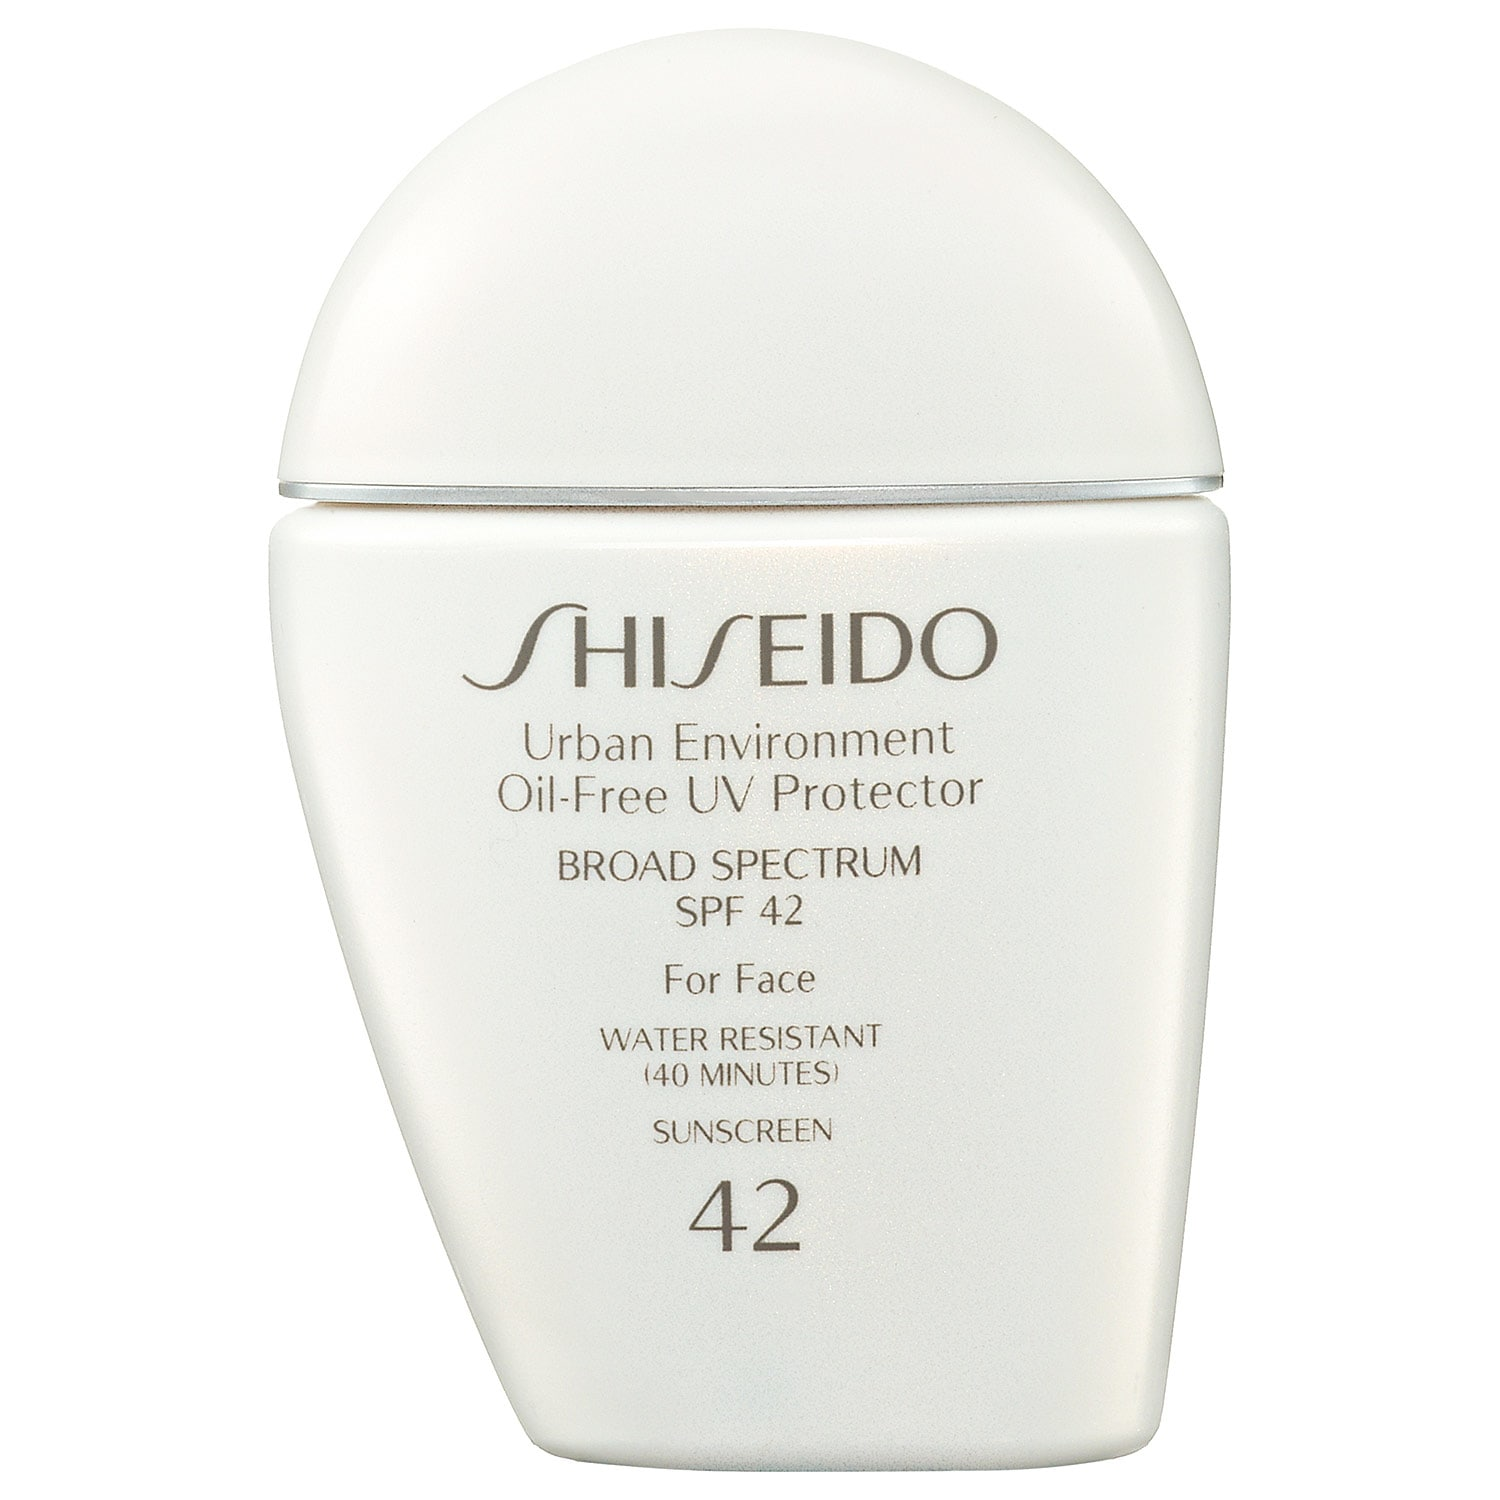 Shiseido-Urban Environment Oil-Free Uv Protector Broad Spectrum Face Sunscreen Spf 42